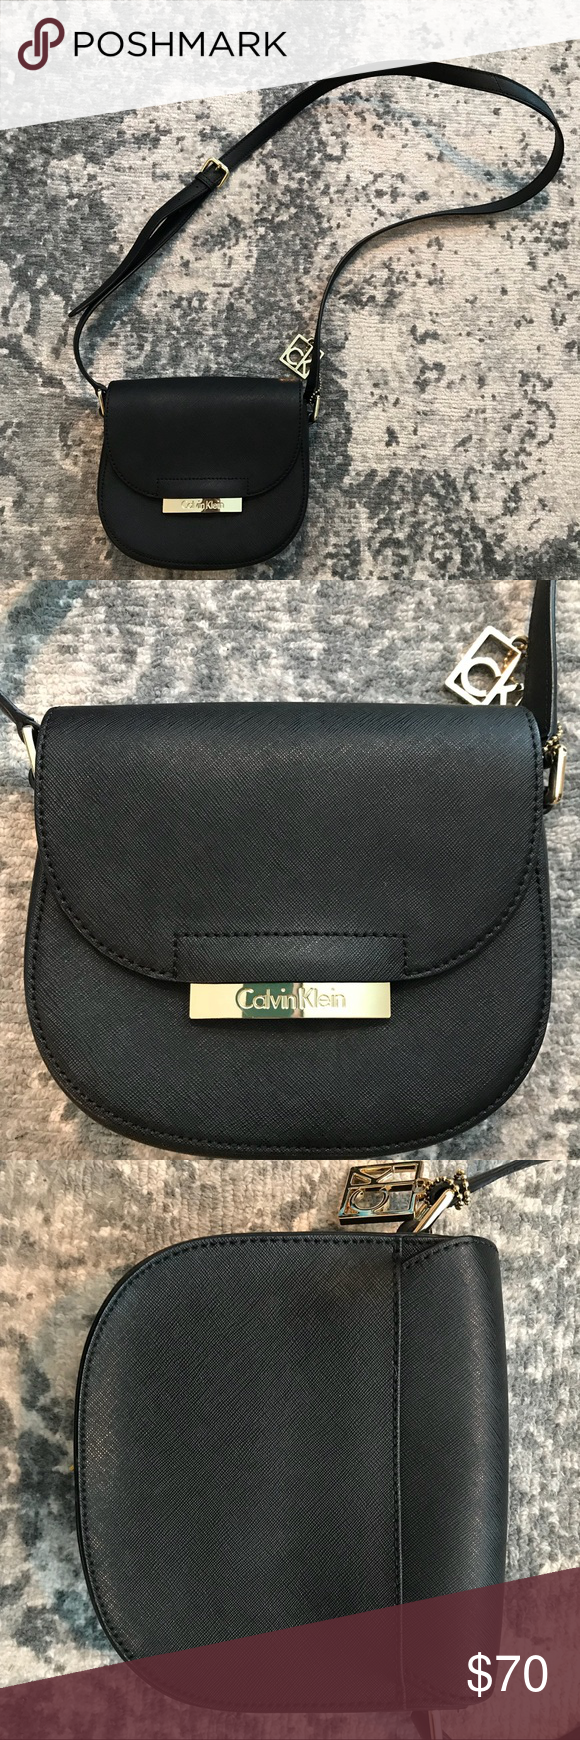 Calvin Klein Saffiano Leather Black Crossbody Bag Used It Only Few Times In Excellent Condition Adjustable St Black Cross Body Bag Calvin Klein Bag Crossbody